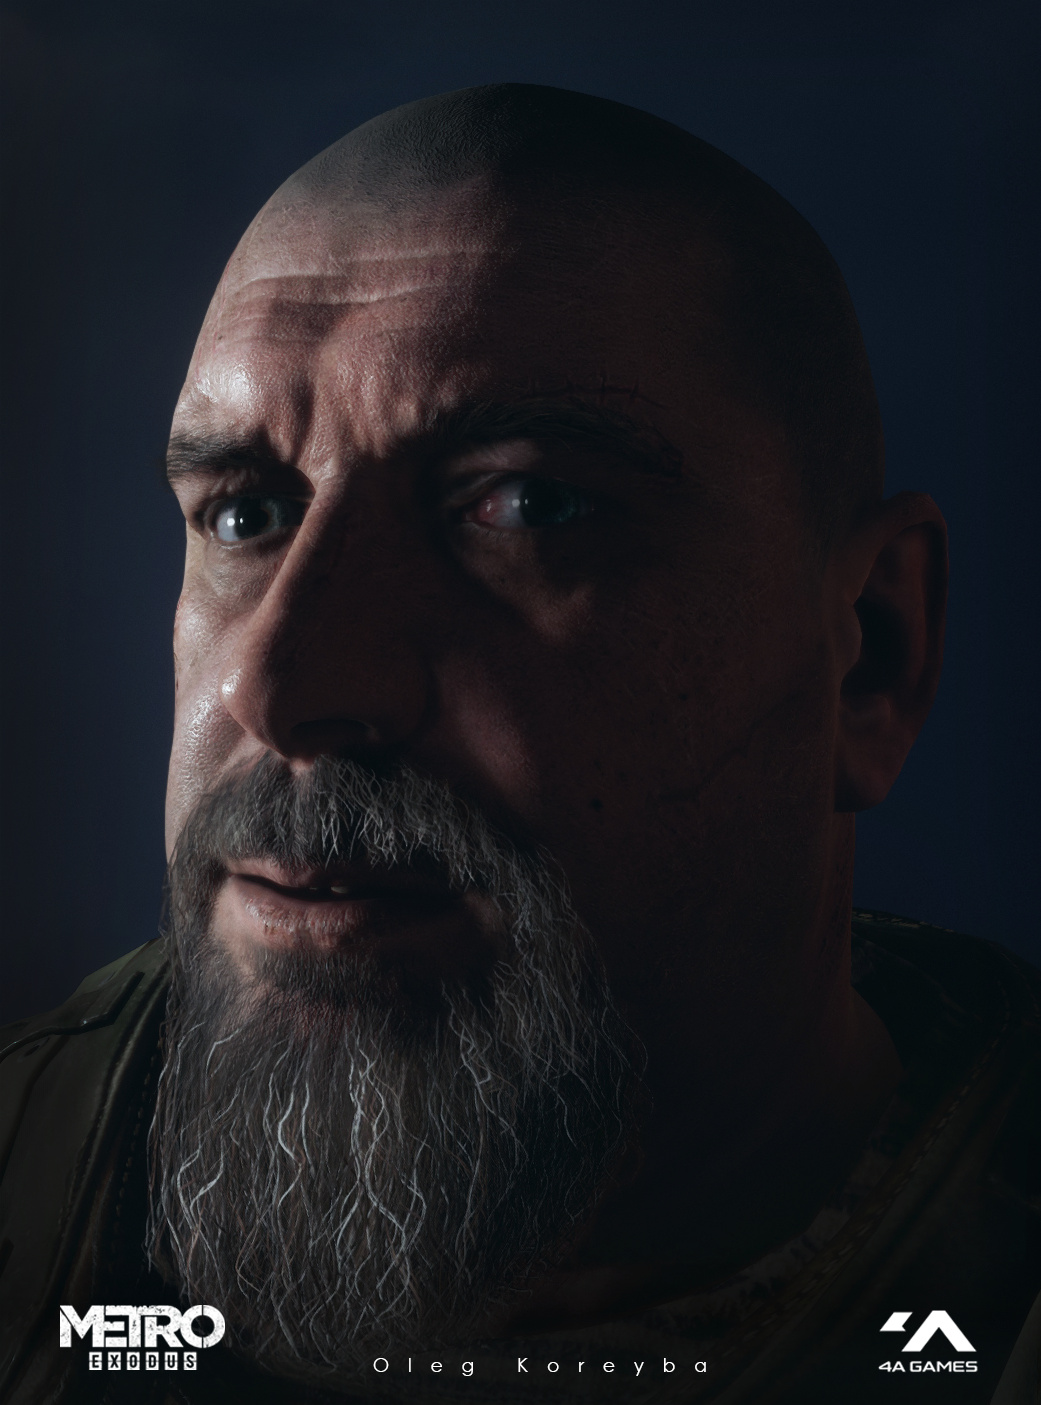 Oleg_Koreyba_Stepan's_head_Metro_Exodus_4a-Games_04